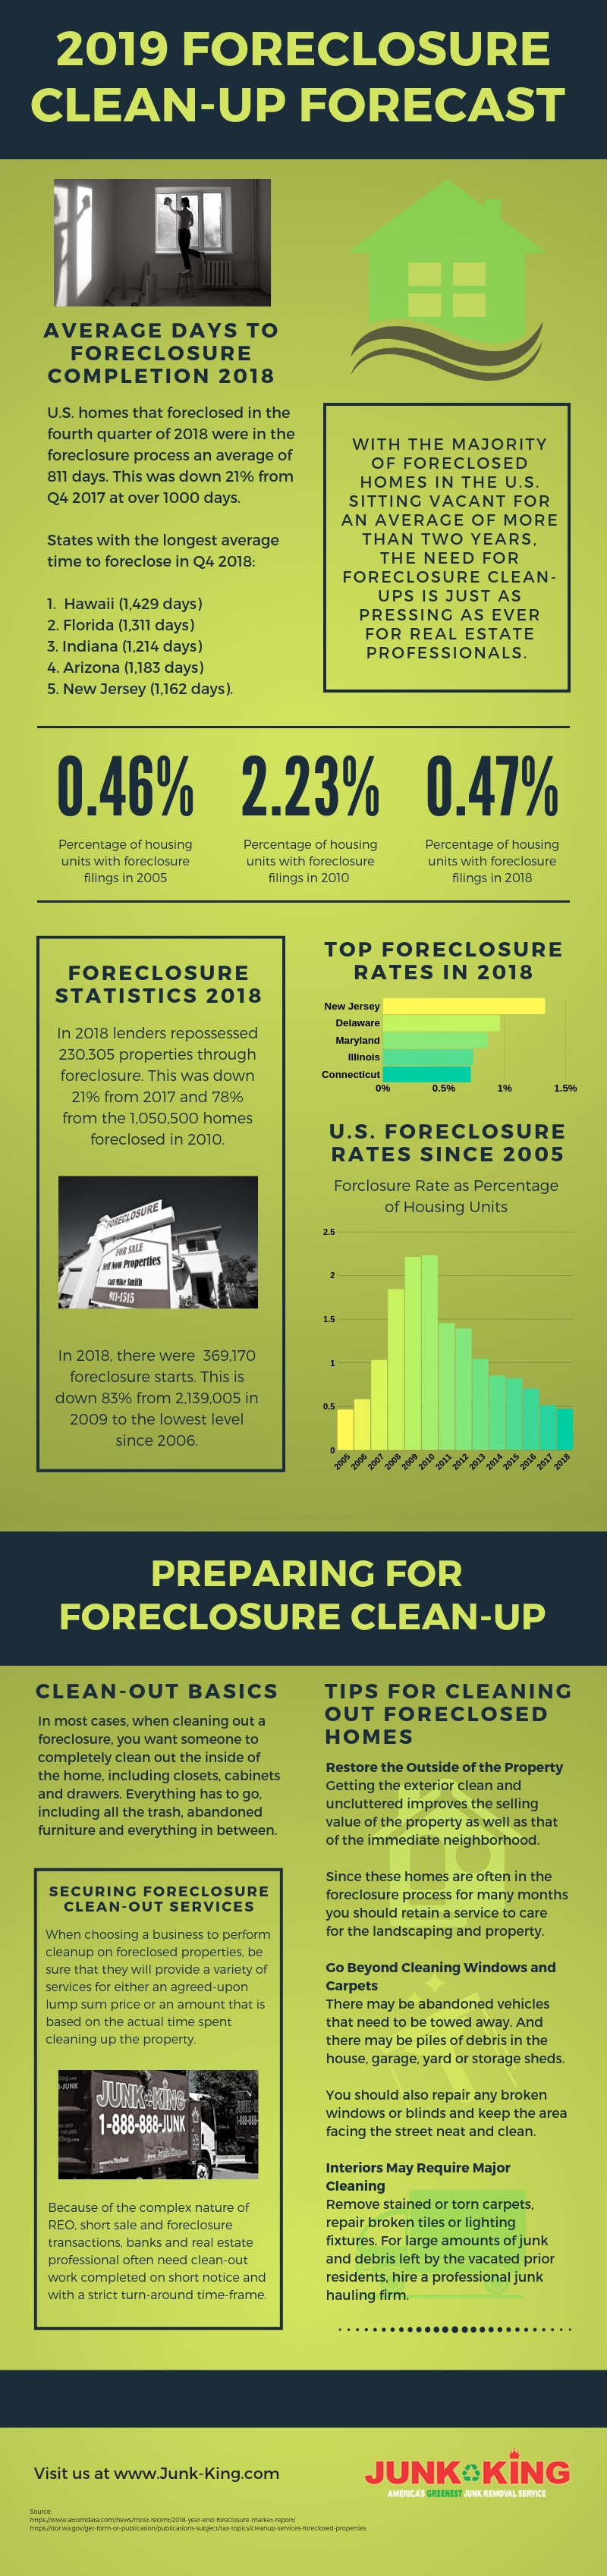 2019_foreclosure_cleanup_forecast